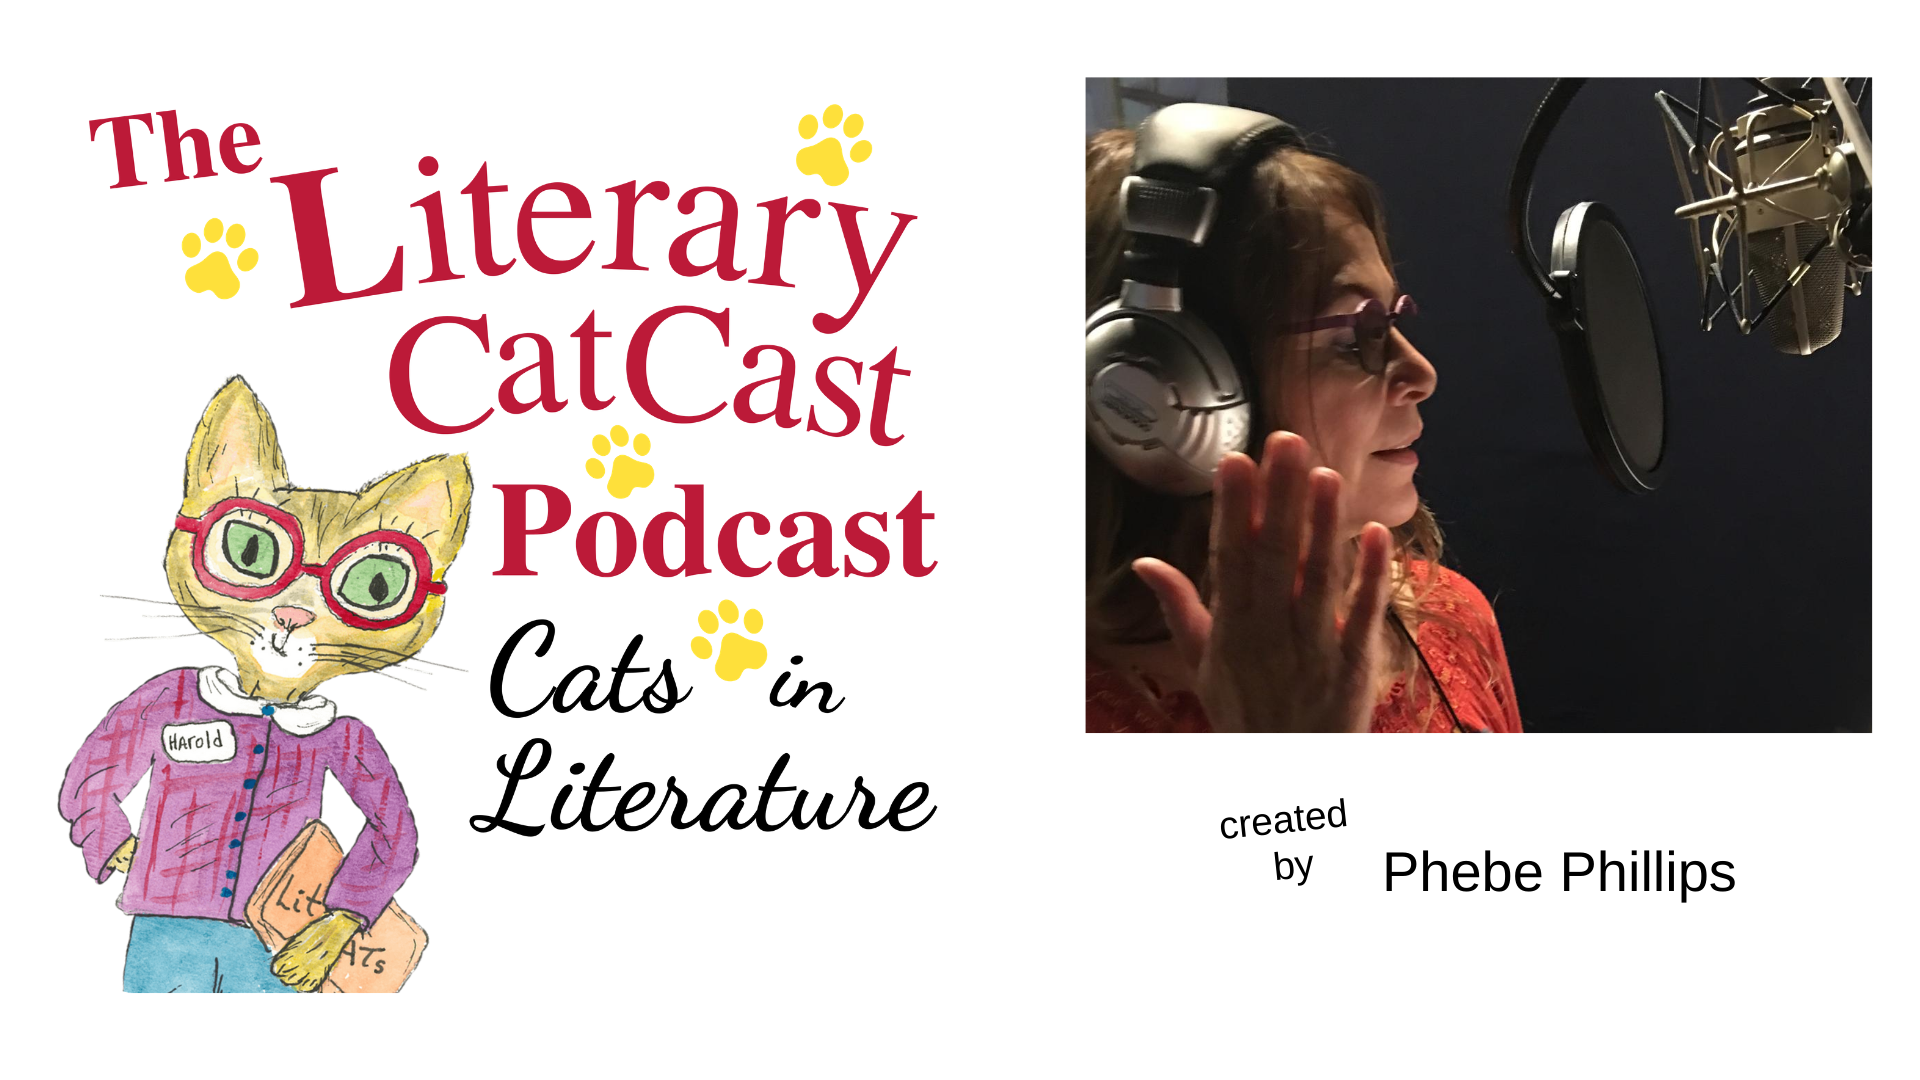 This is a banner for The Literary Catcast Website.